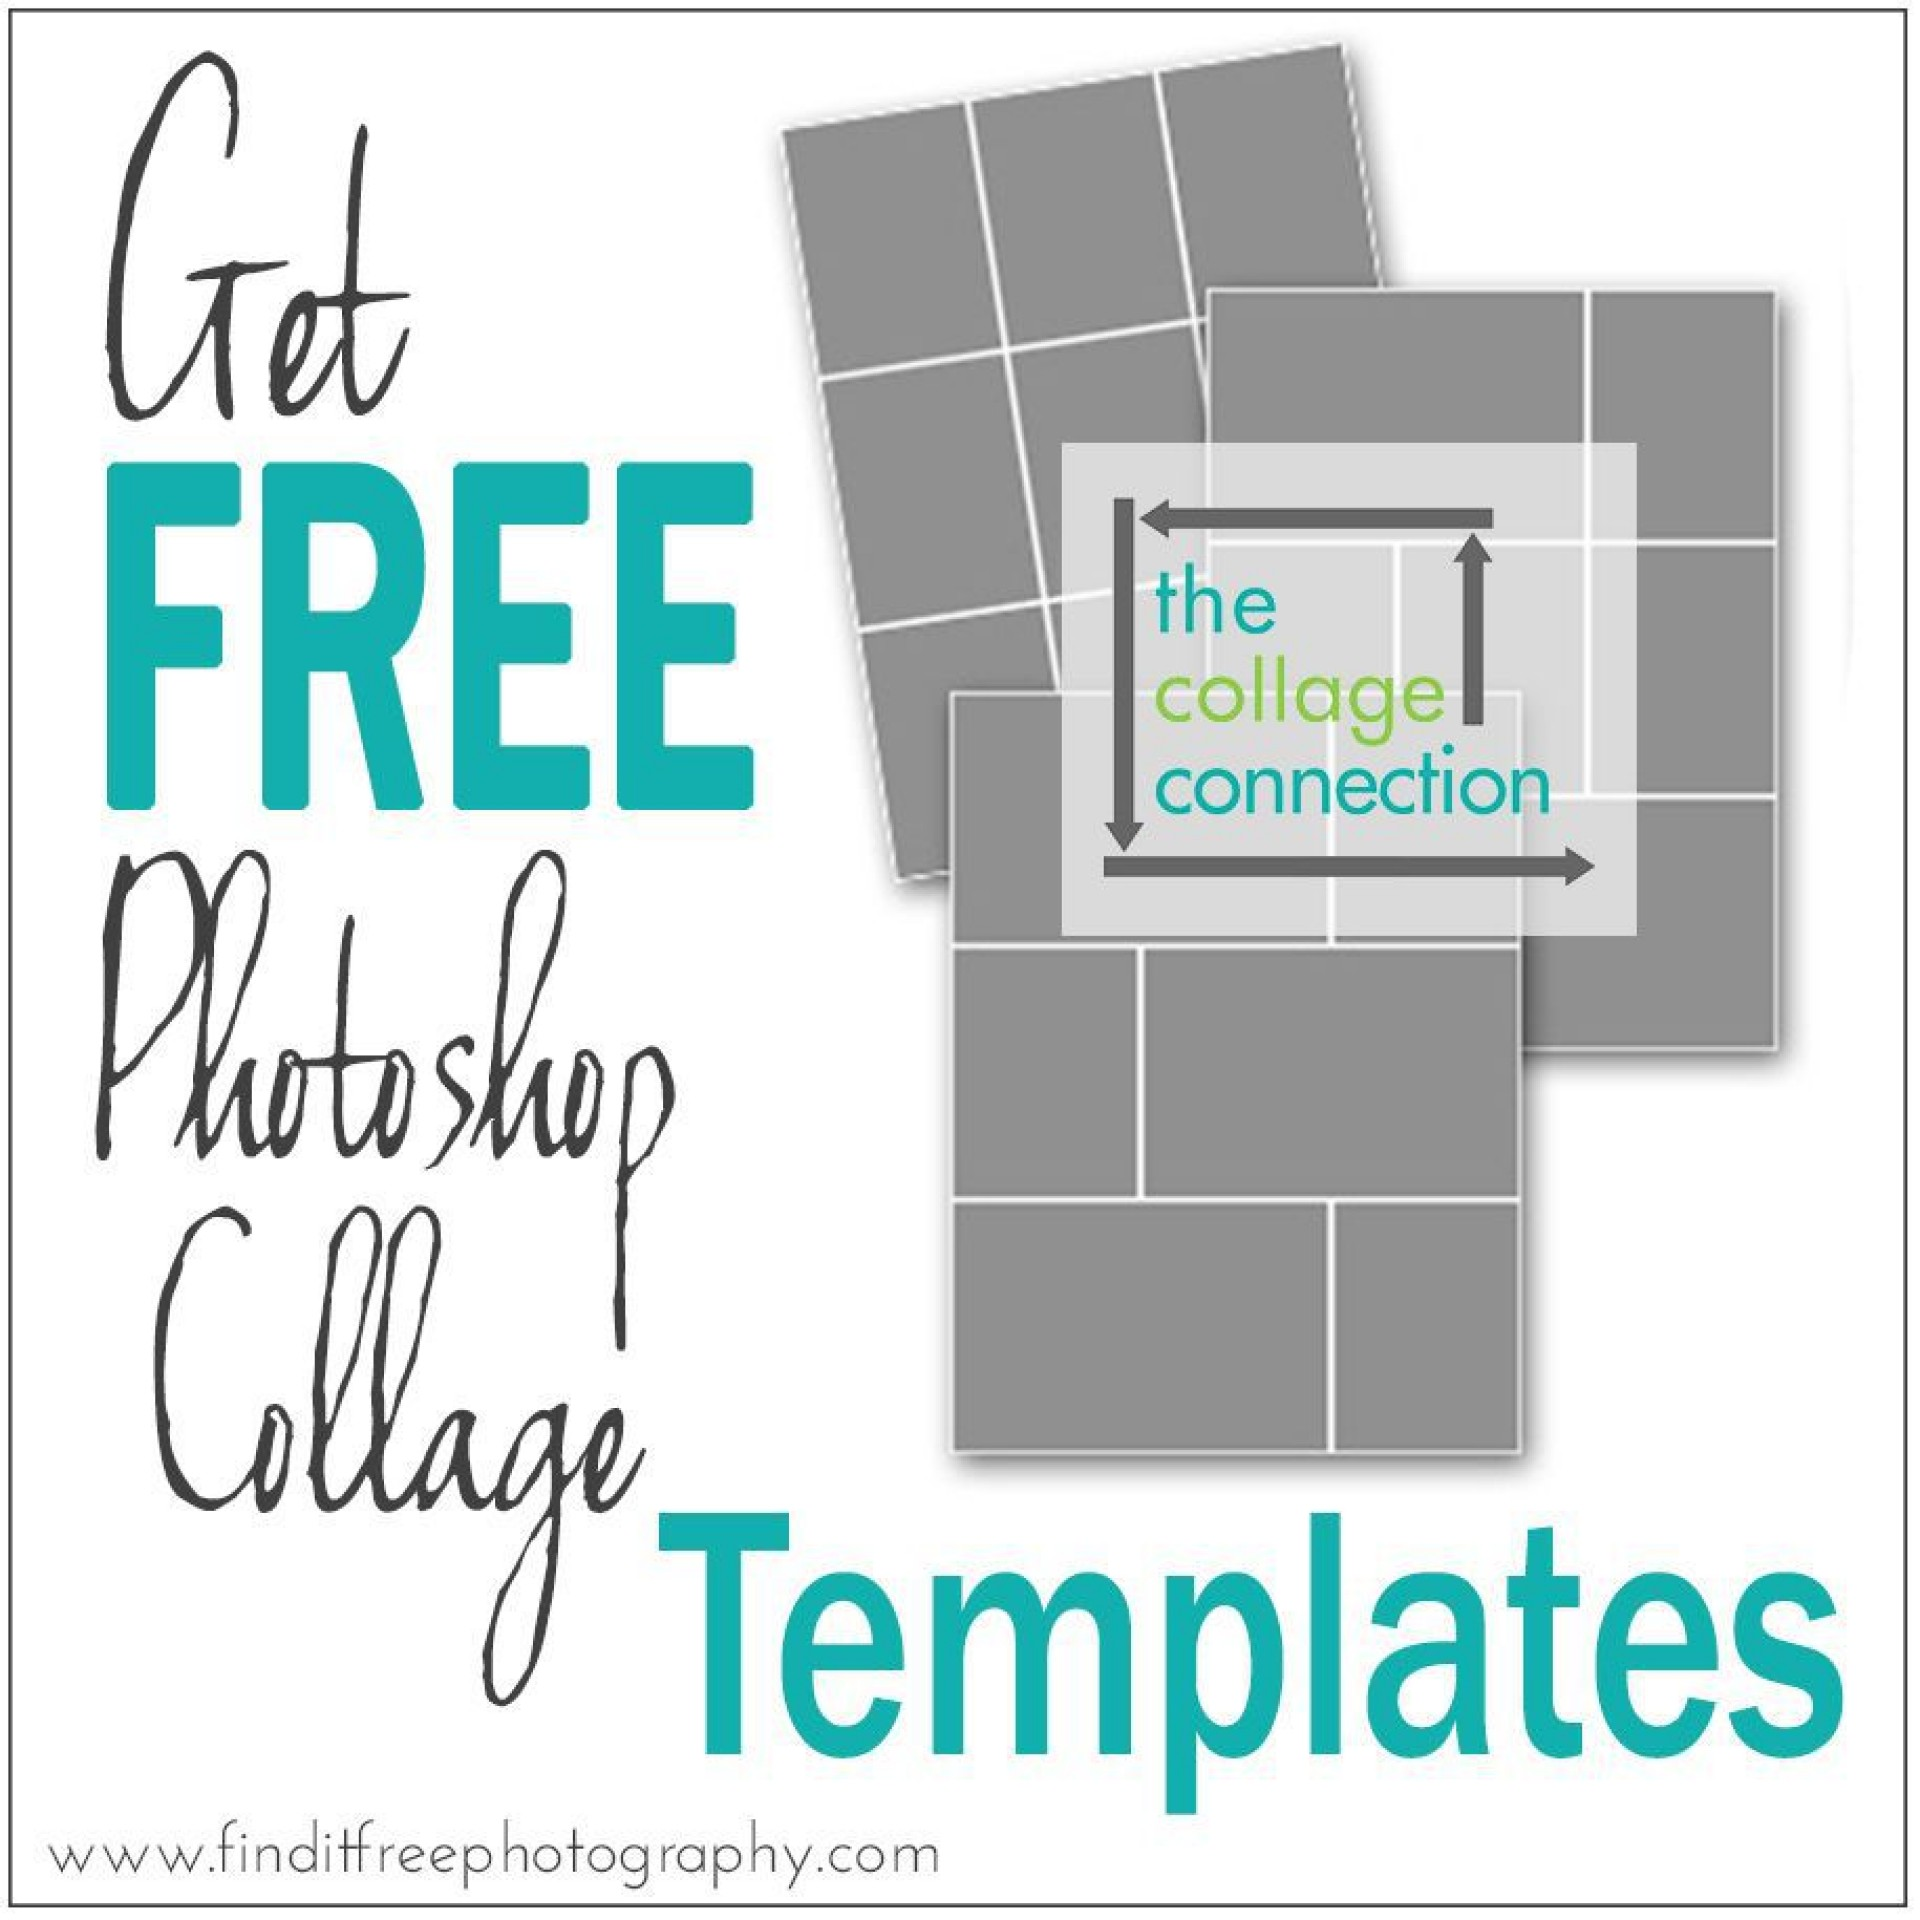 003 Unbelievable Free Photoshop Collage Template Image  Templates Psd Download Photo For Element1920